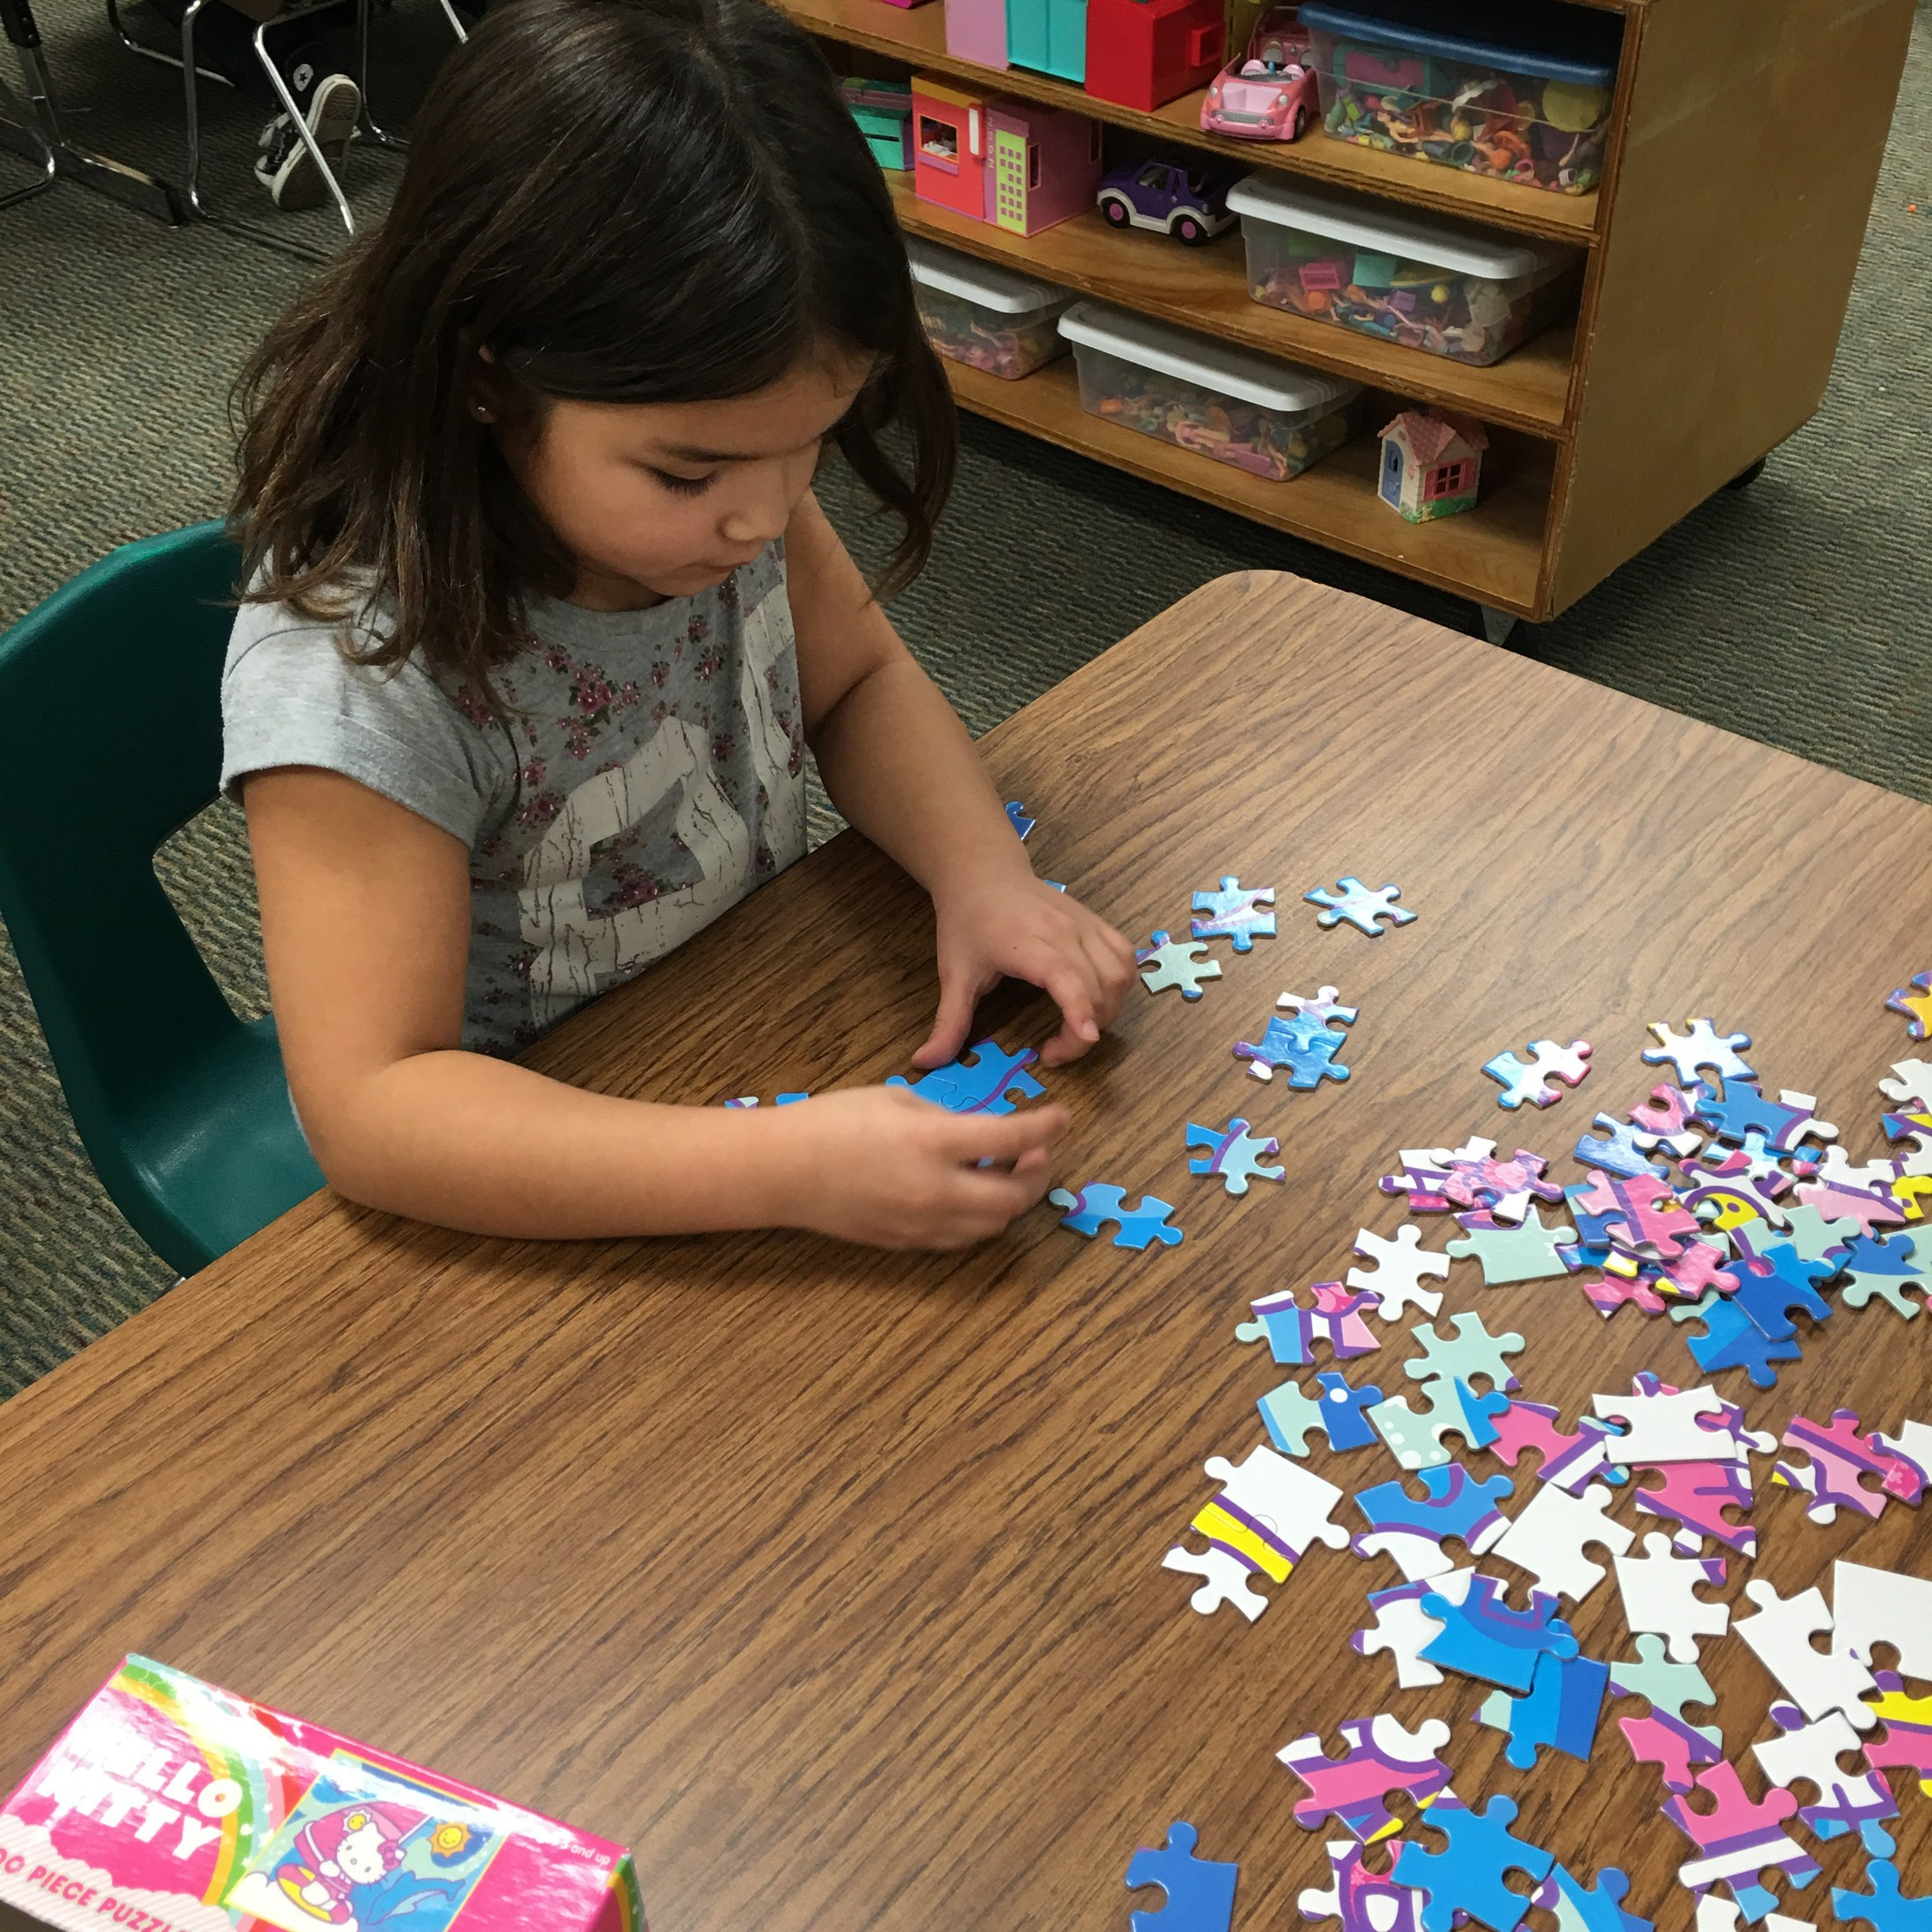 Jig saw puzzles.